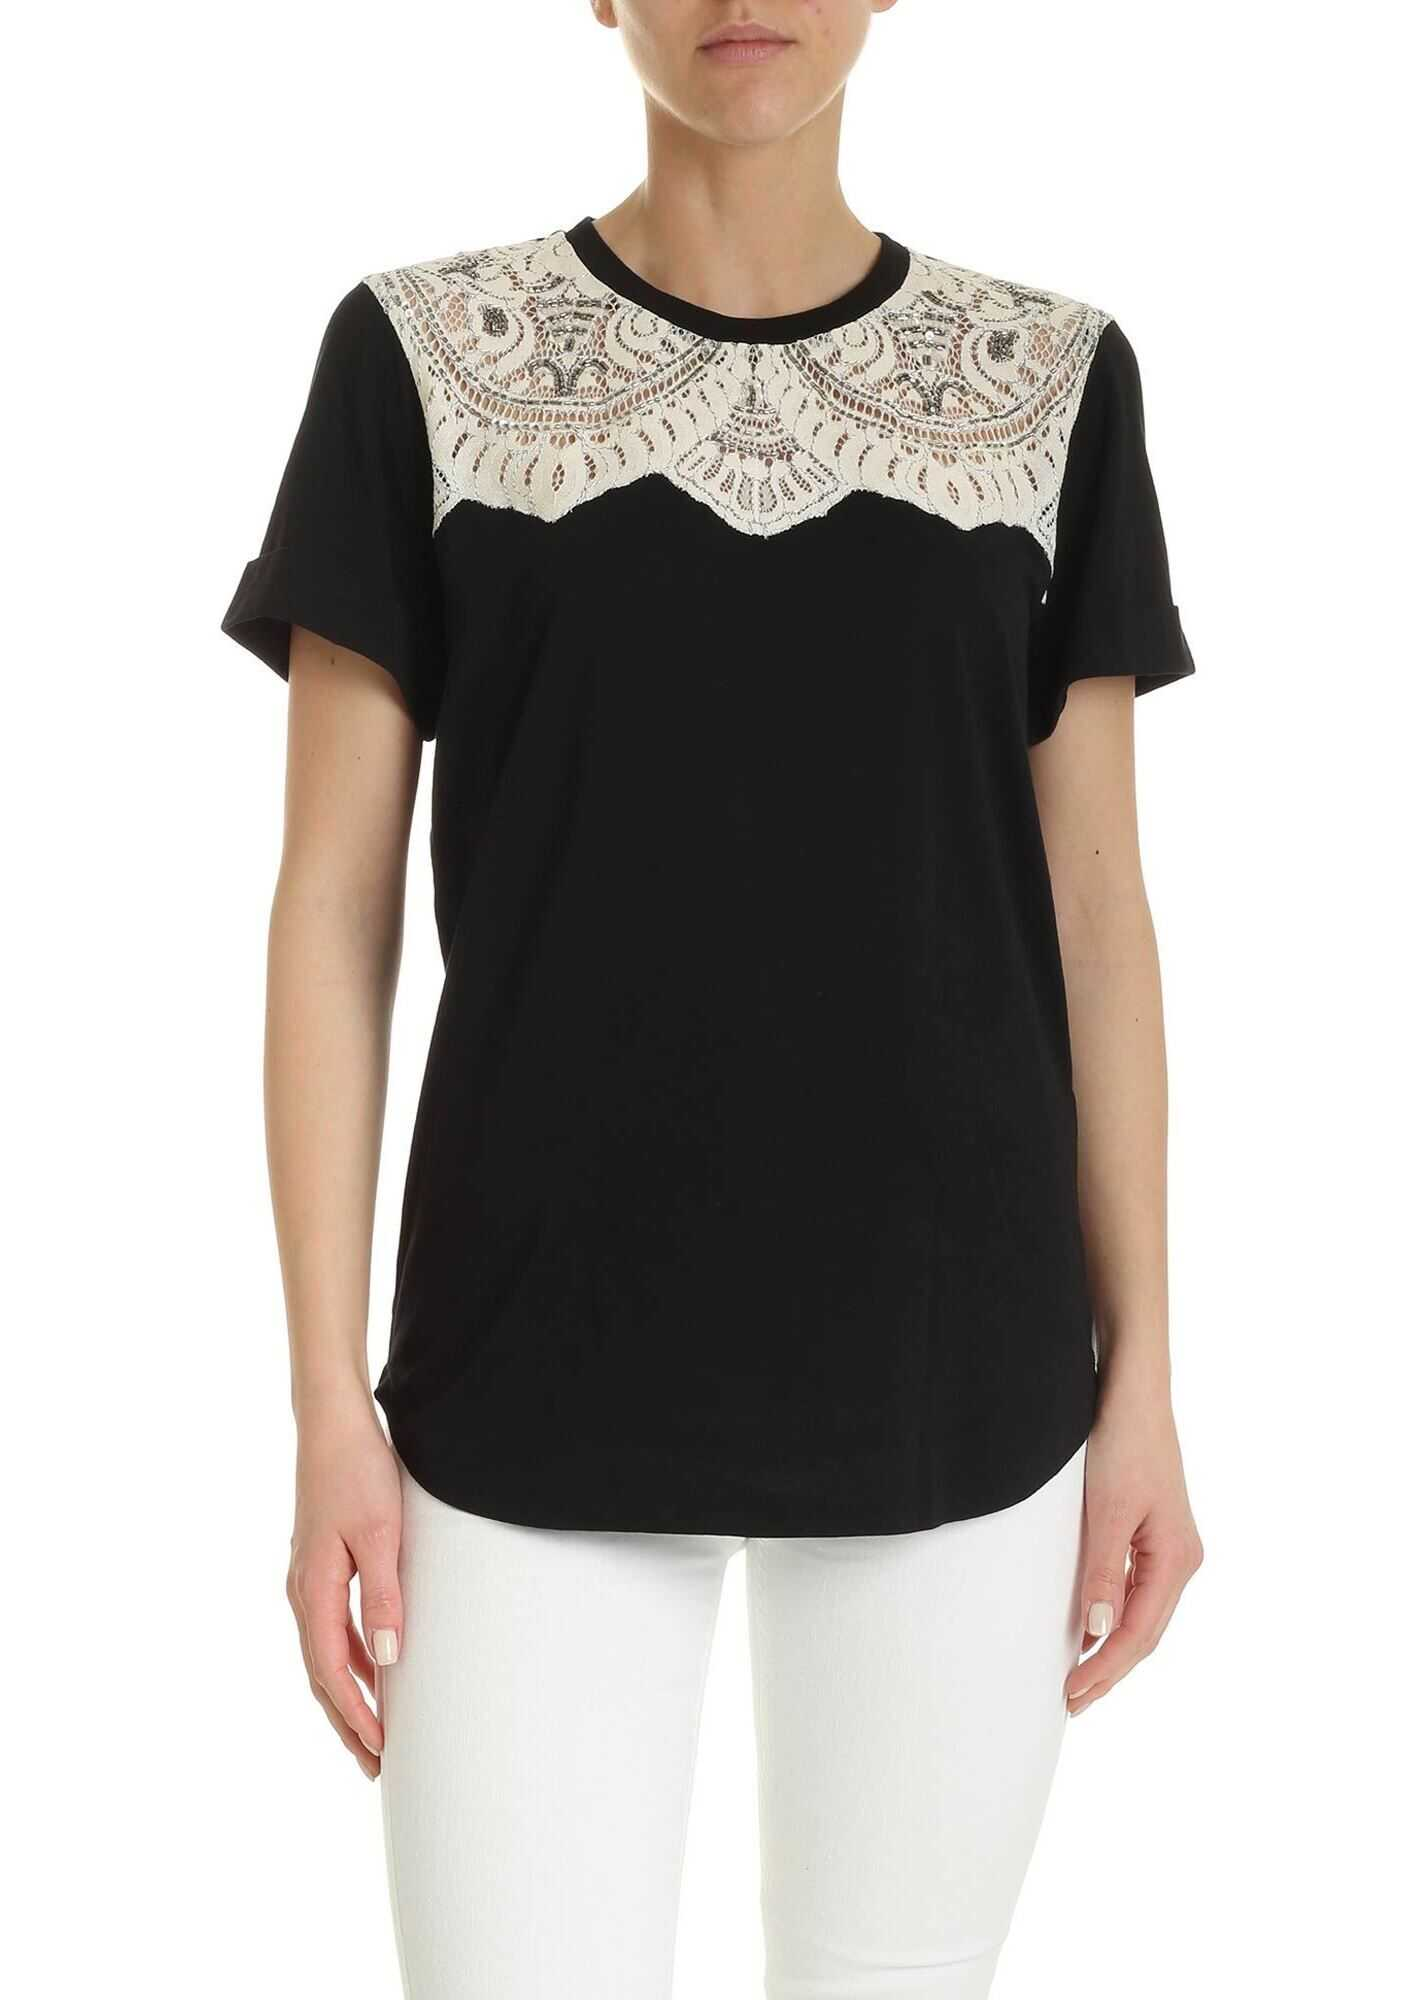 Twin-set Simona Barbieri Lace And Embroidery T-Shirt In Black Black